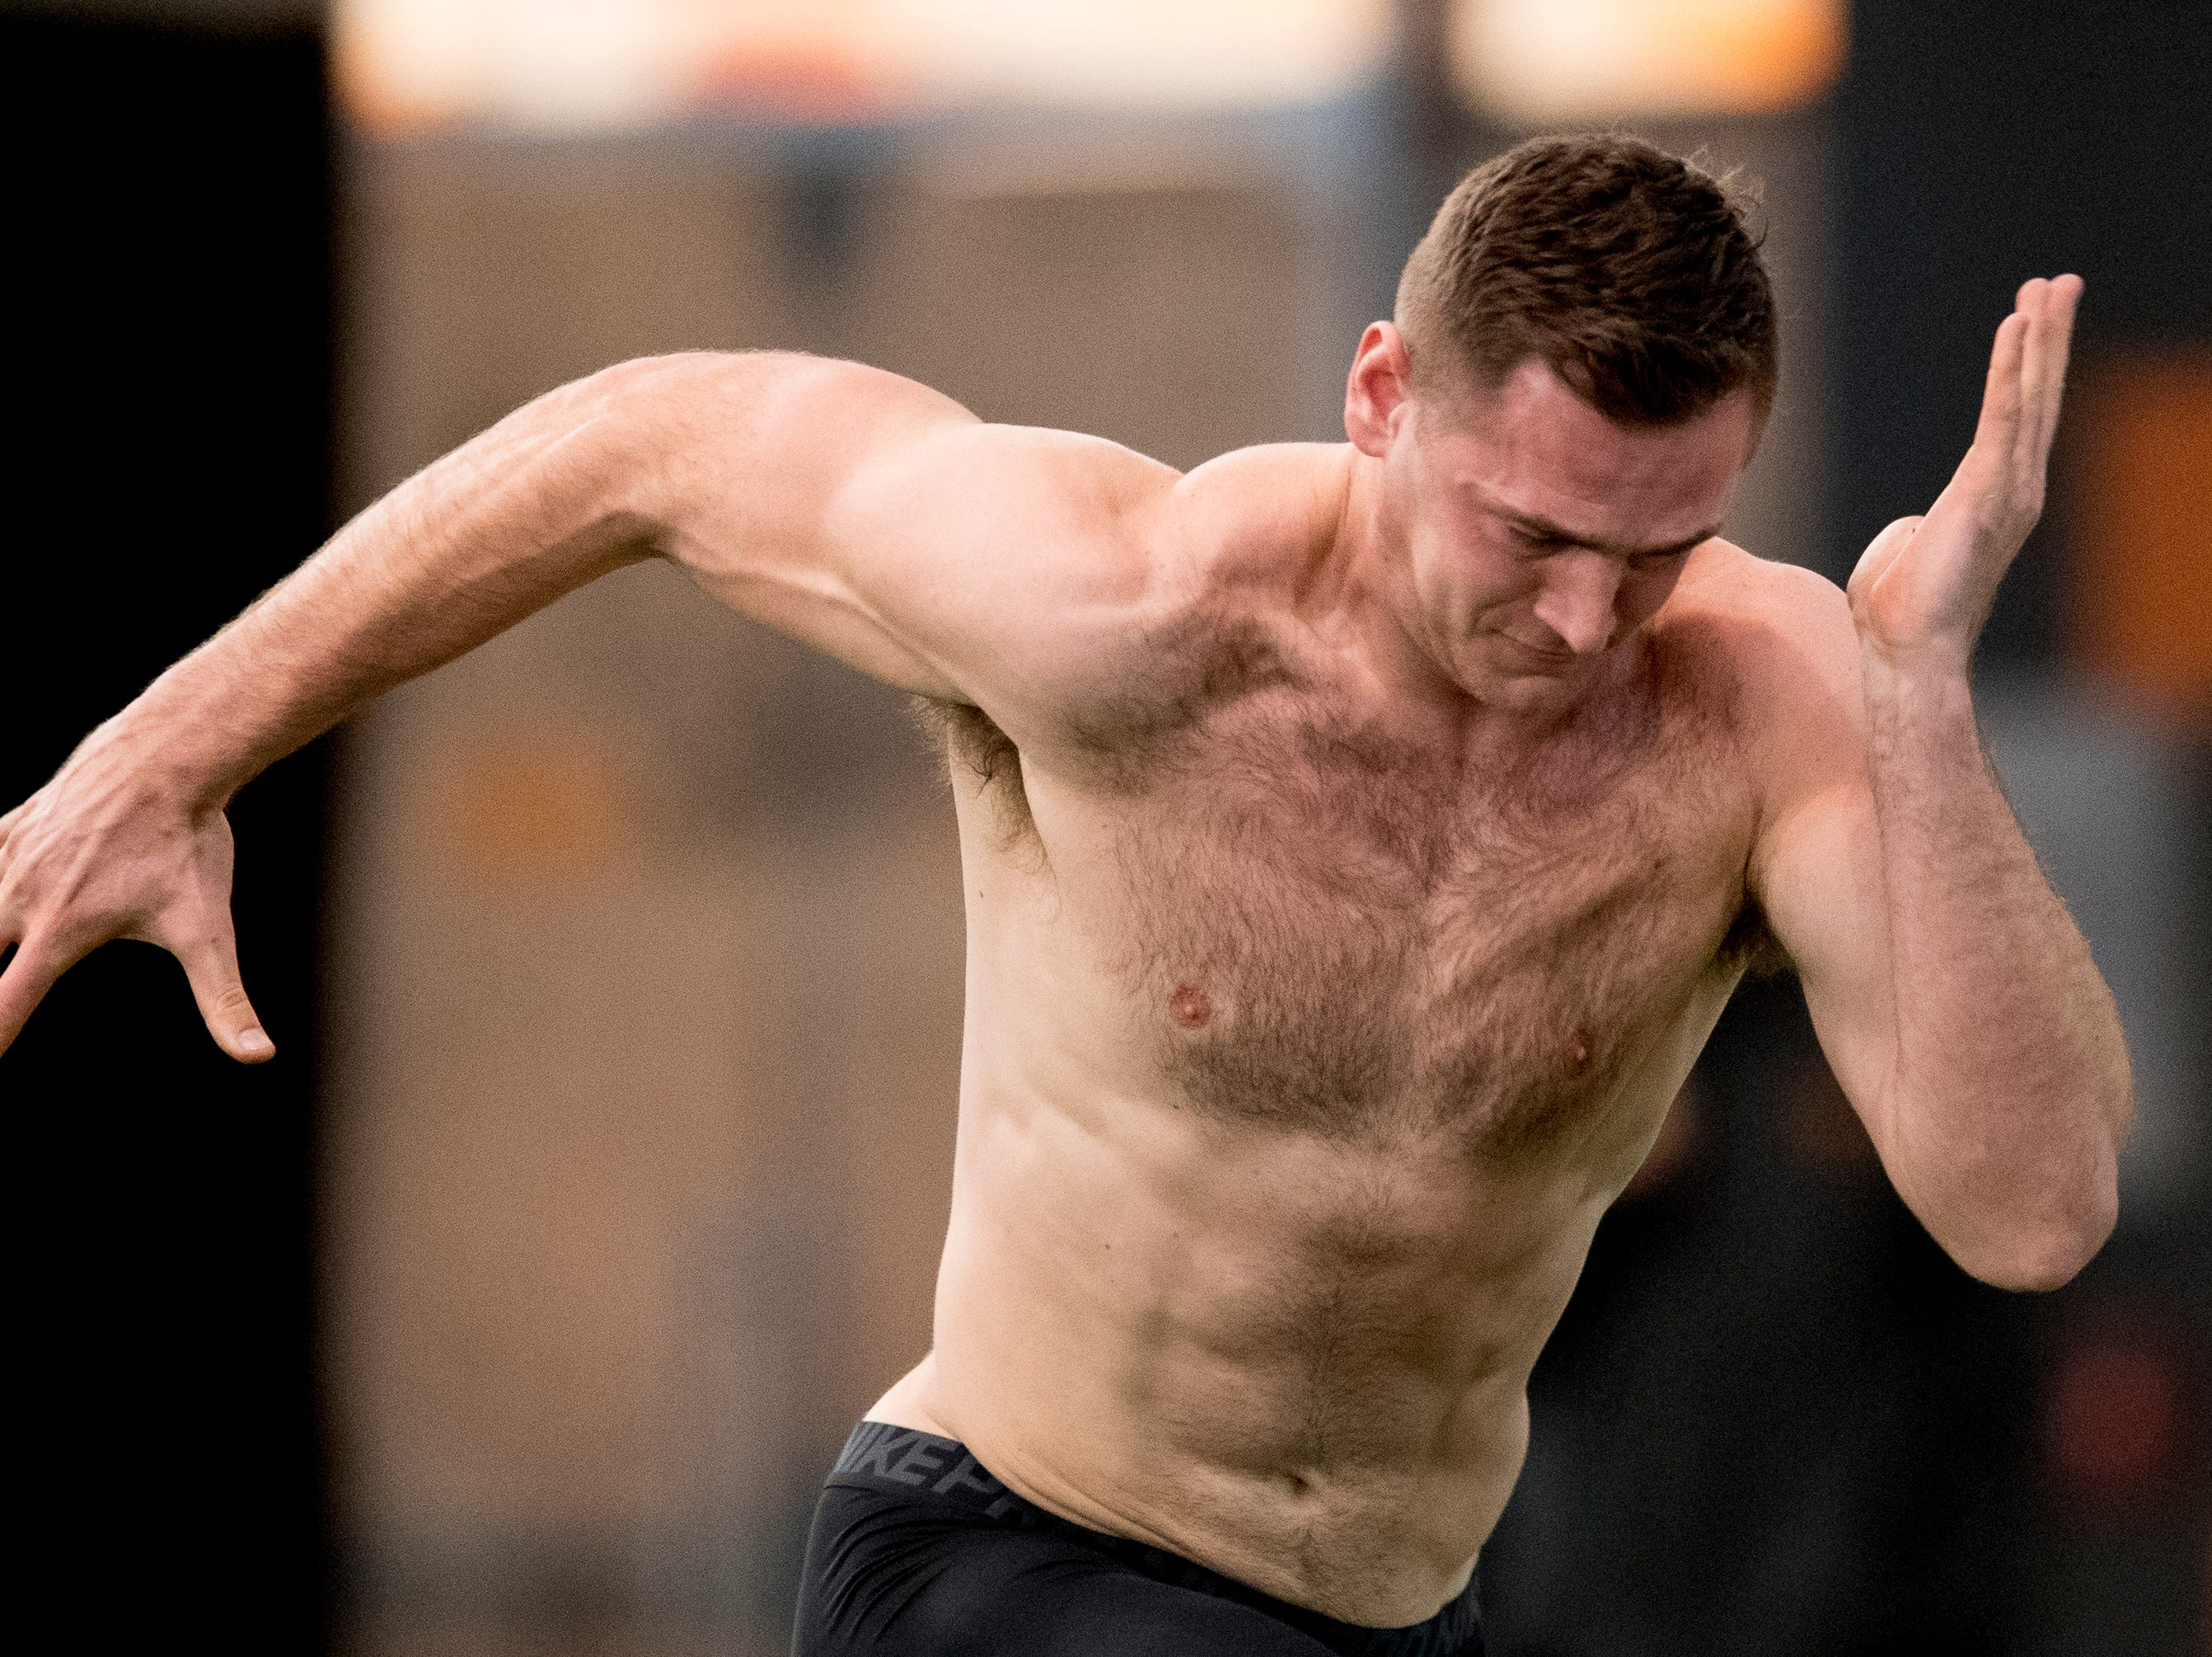 Keller Chryst does the 40 yard dash at Tennessee Pro Day at Anderson Training Facility in Knoxville, Tennessee on Thursday, March 14, 2019. Draft prospects from Tennessee and other schools worked out before NFL scouts.